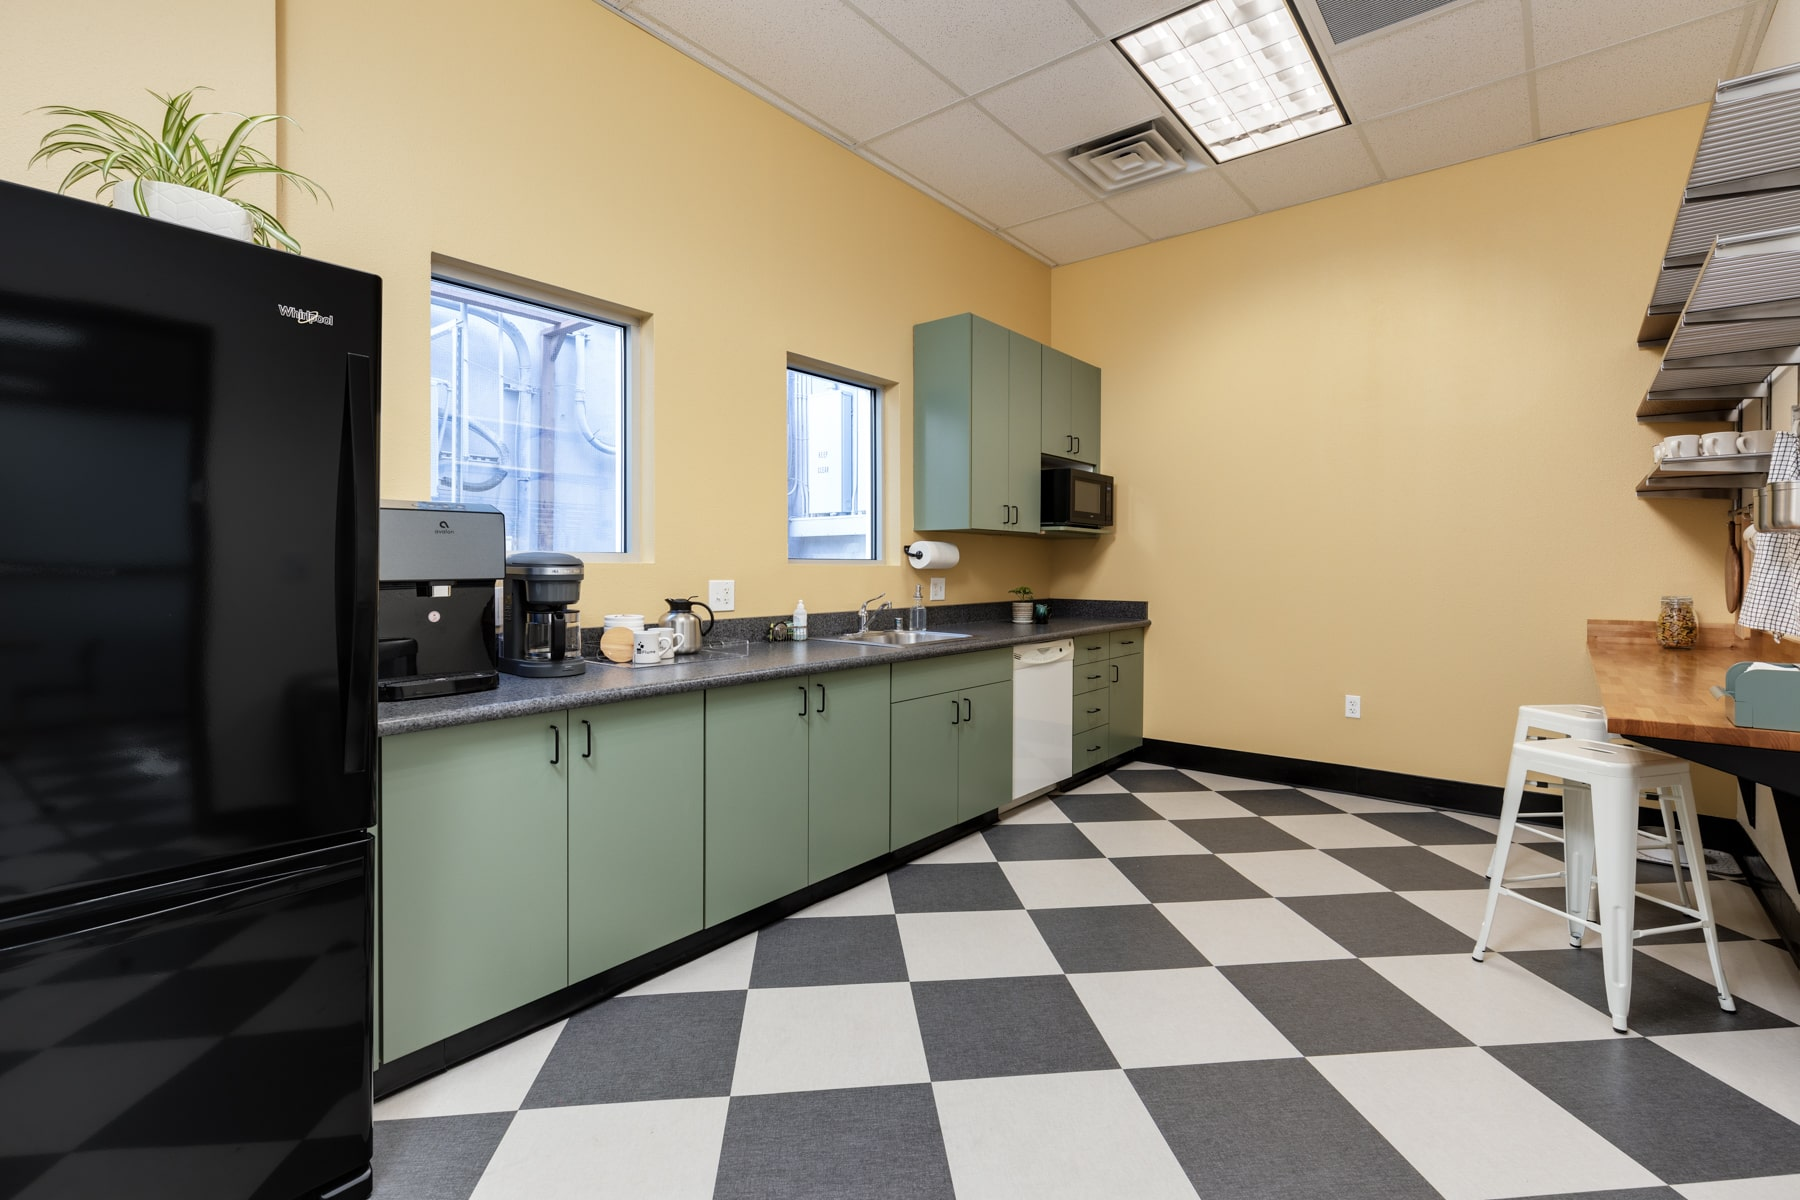 A large, open kitchen with white and black checkered tiles, a lot of counter space, and a black fridge.